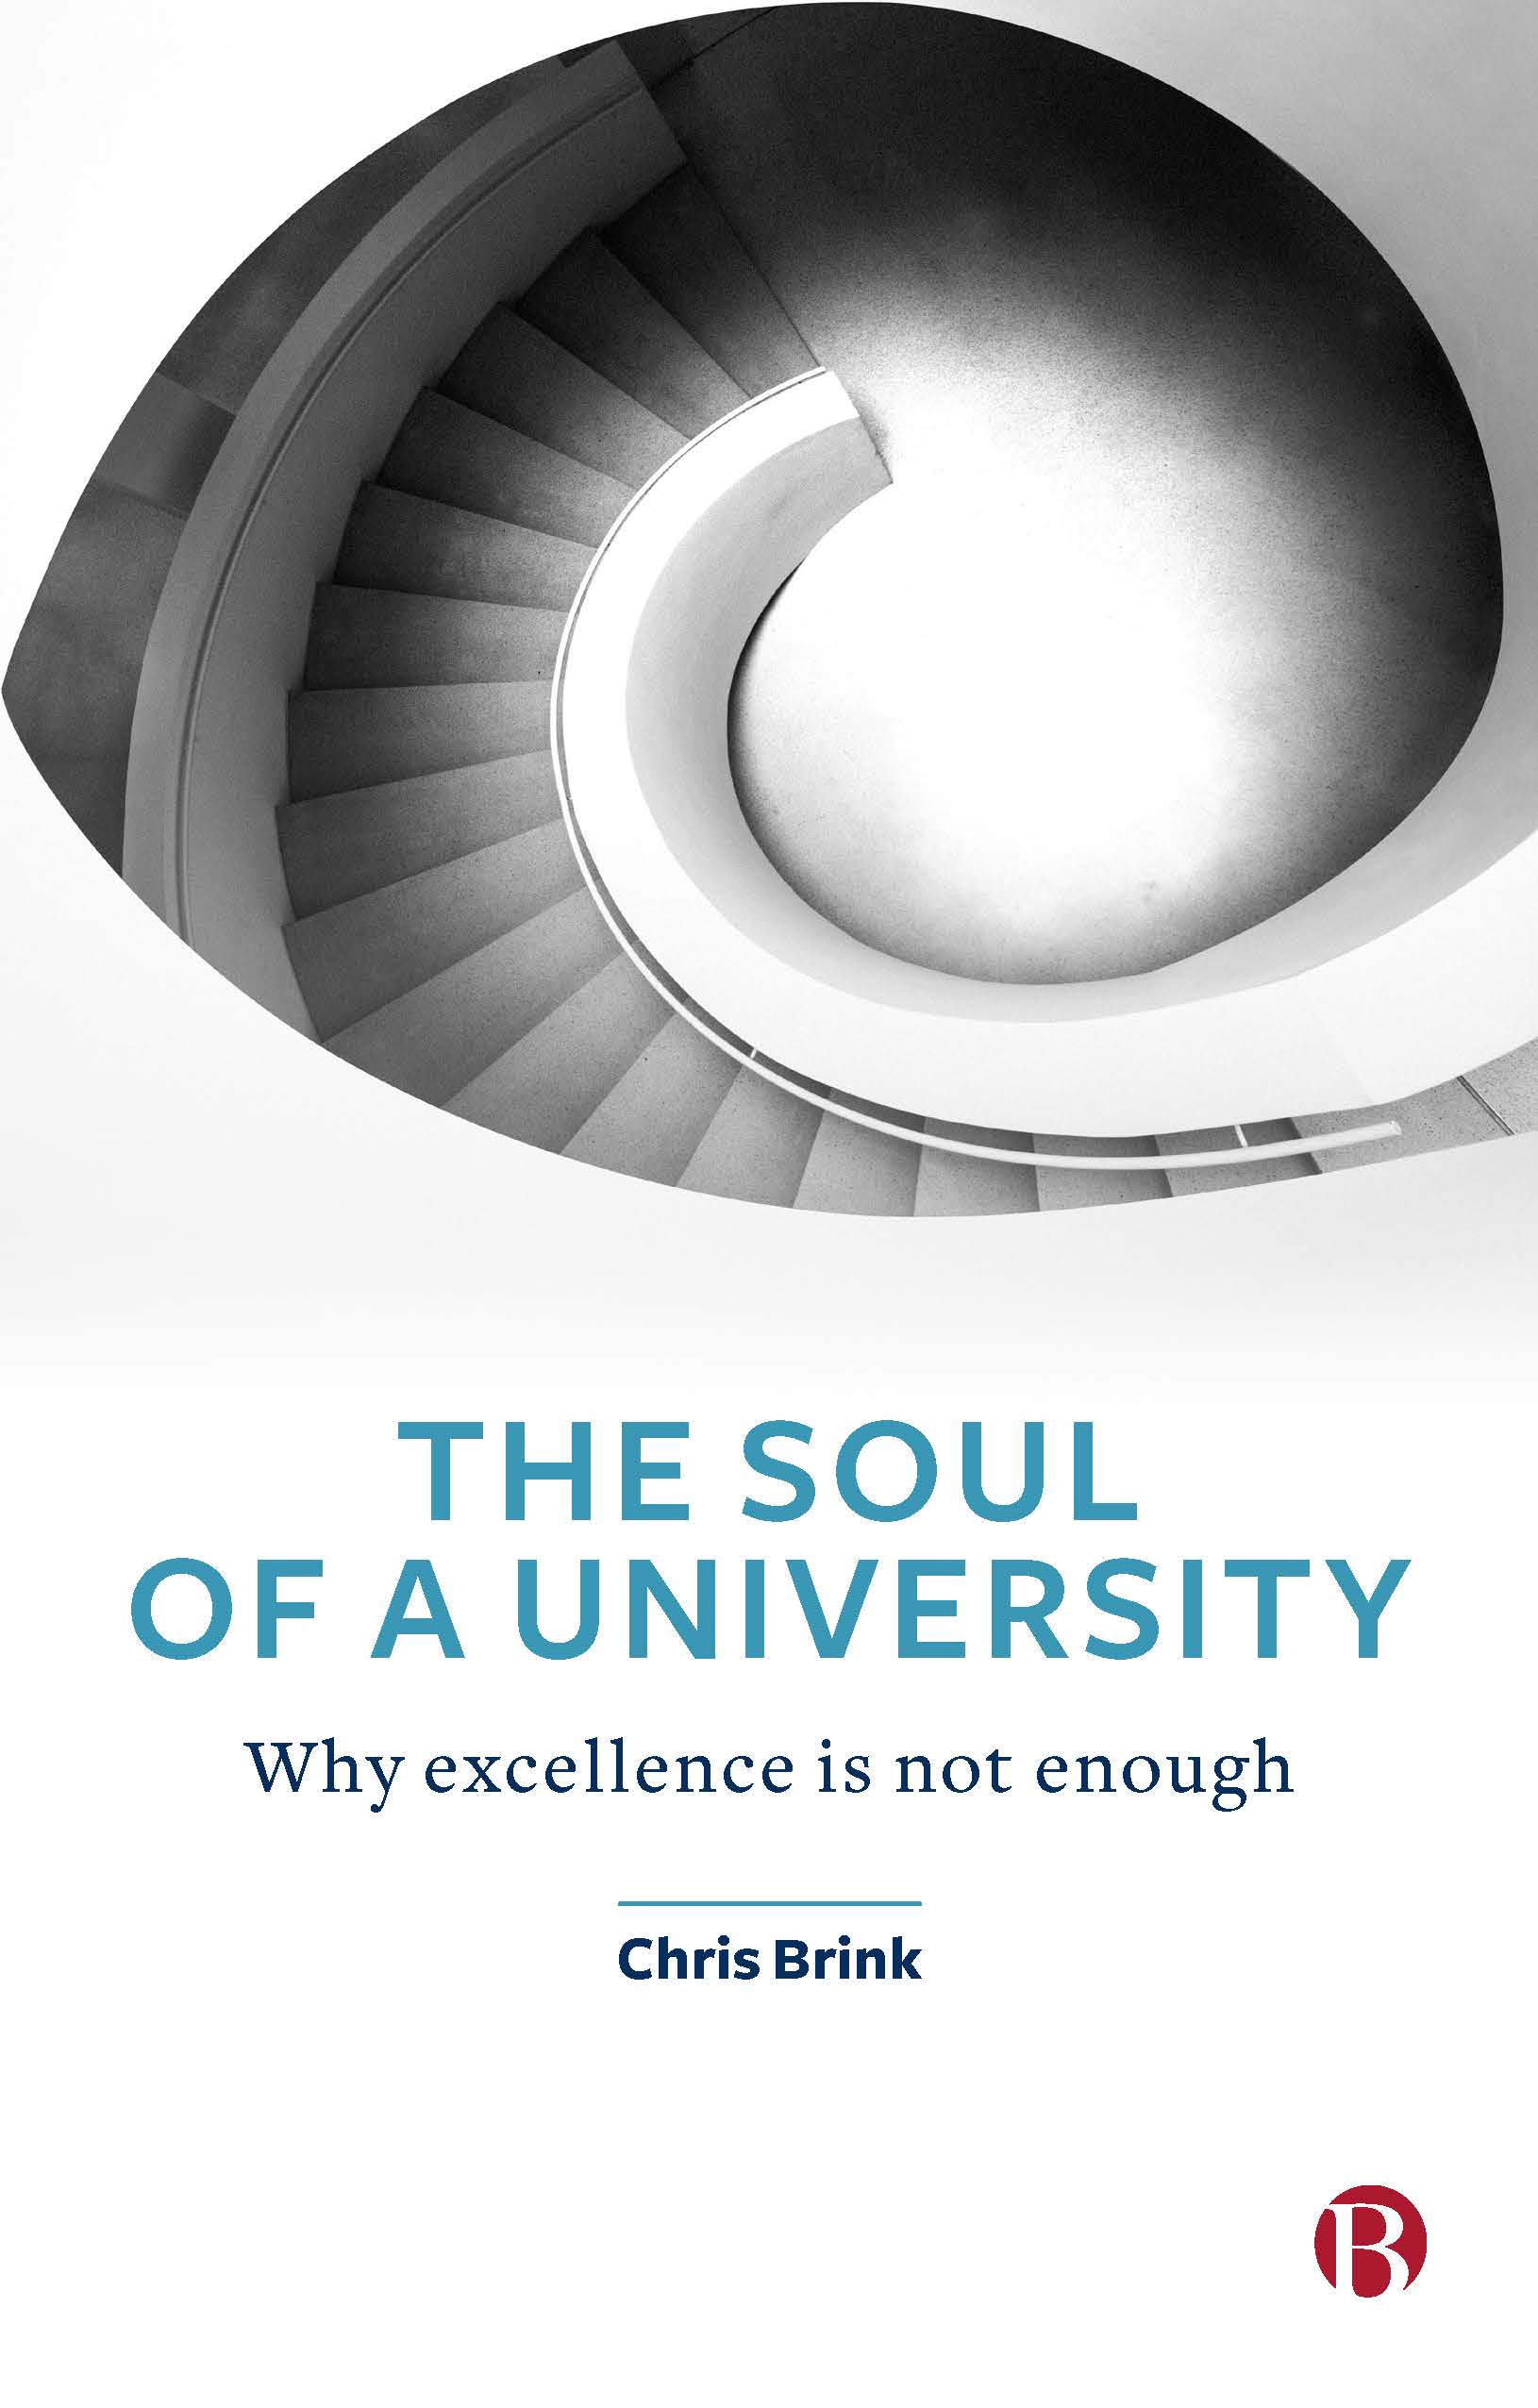 Book Review: The Soul of a University